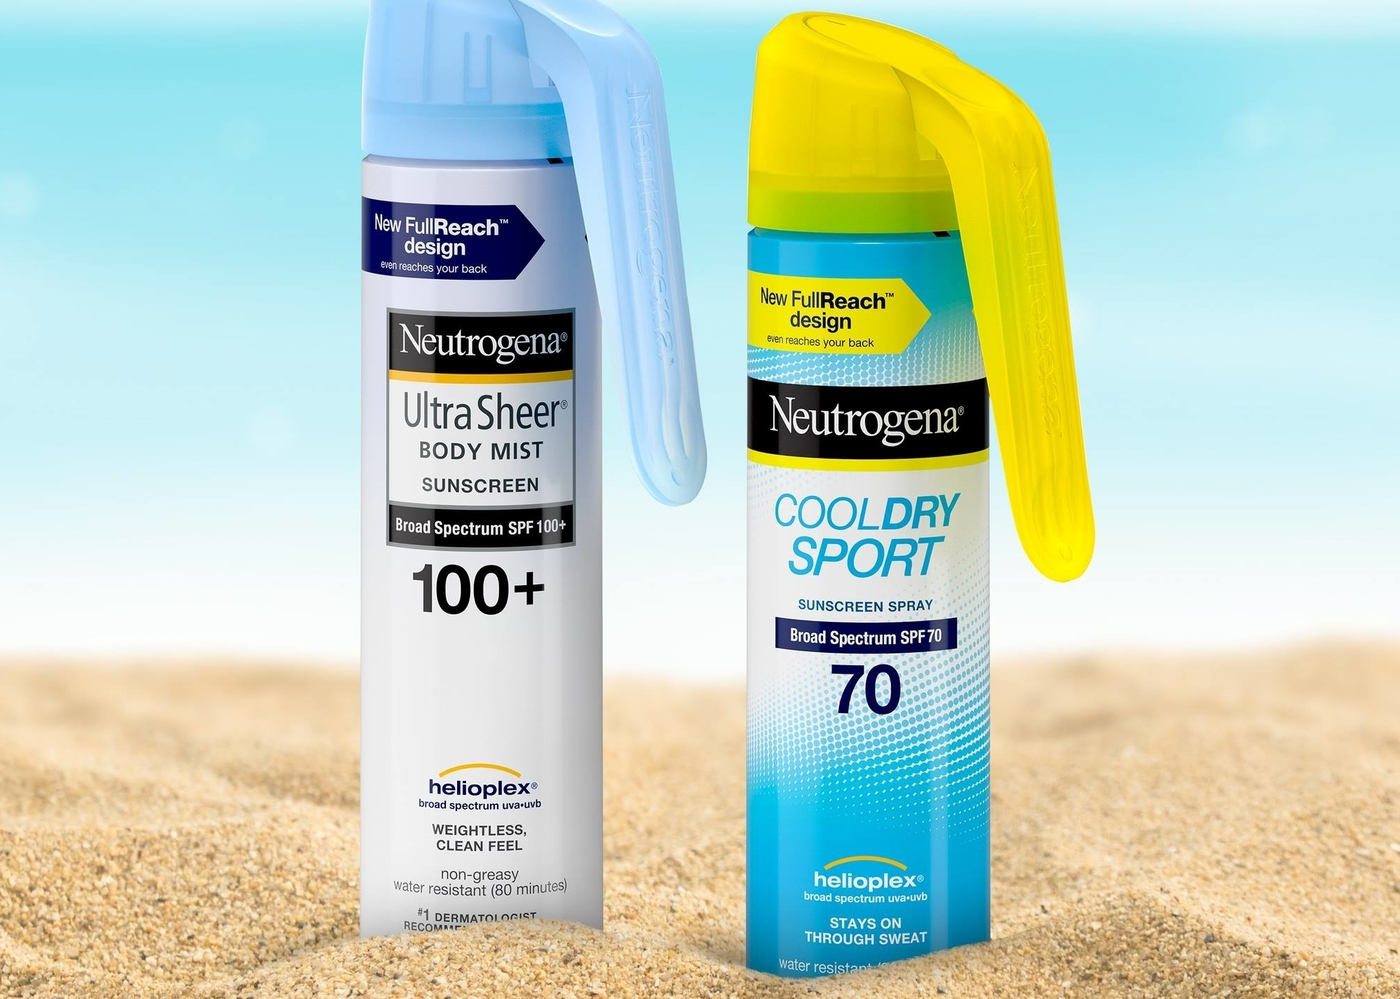 Neutrogena Cool Dry Sport Water-Resistant Sunscreen Spray